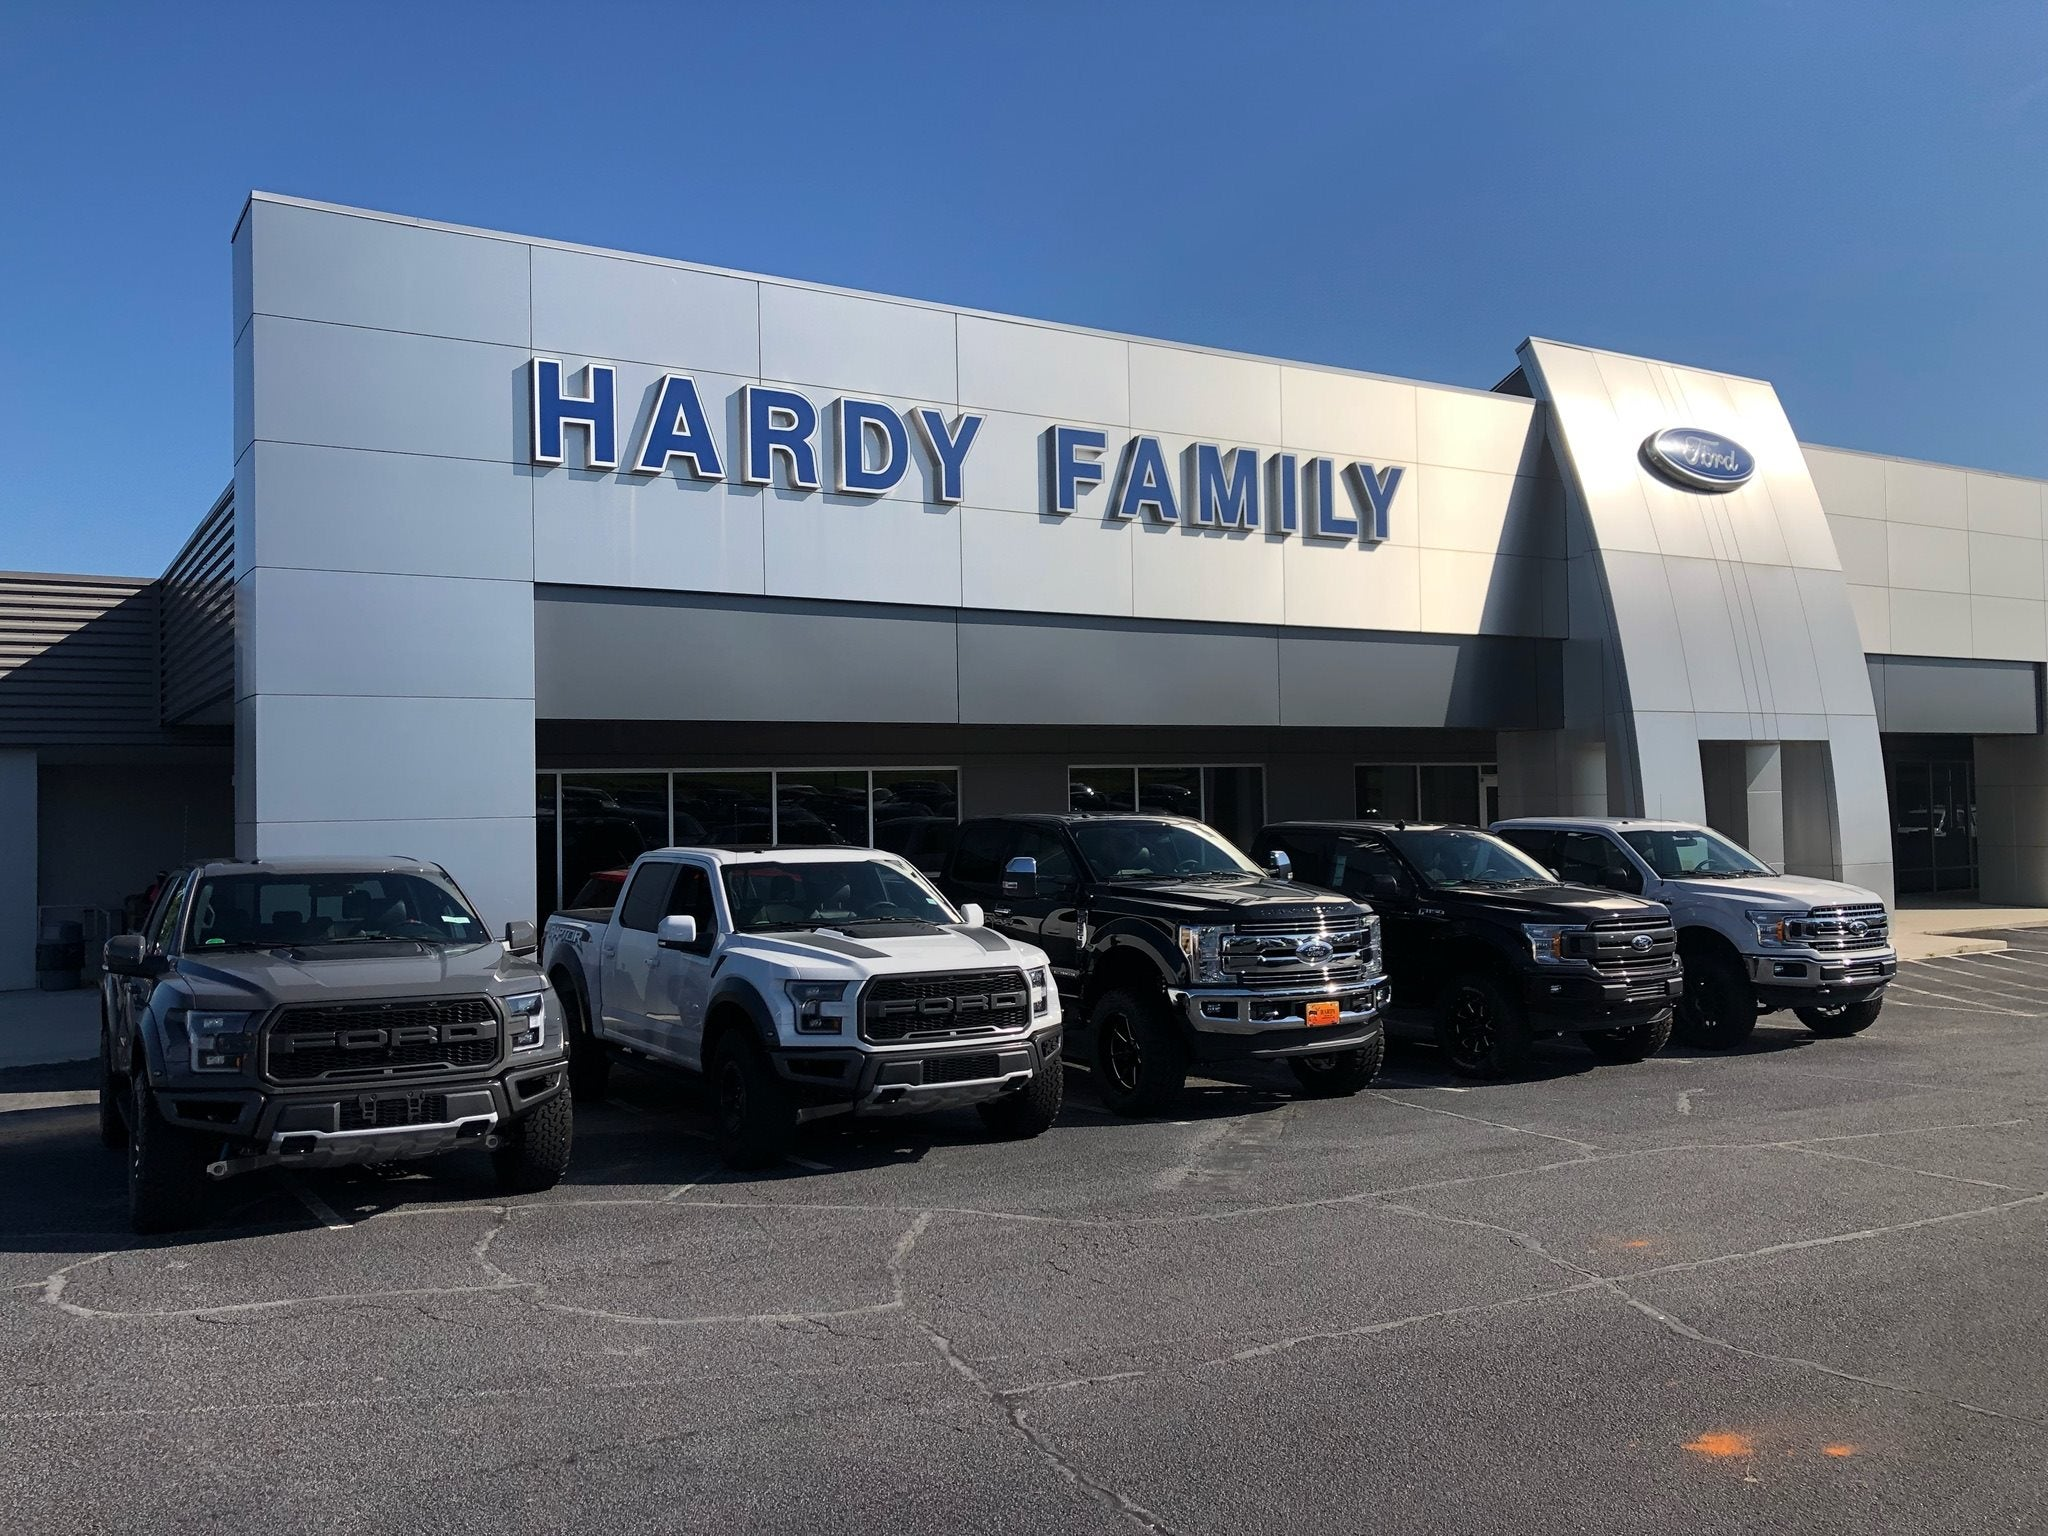 Ford Dealers In Ga >> A Family Owned Ford Dealership In Dallas Ga